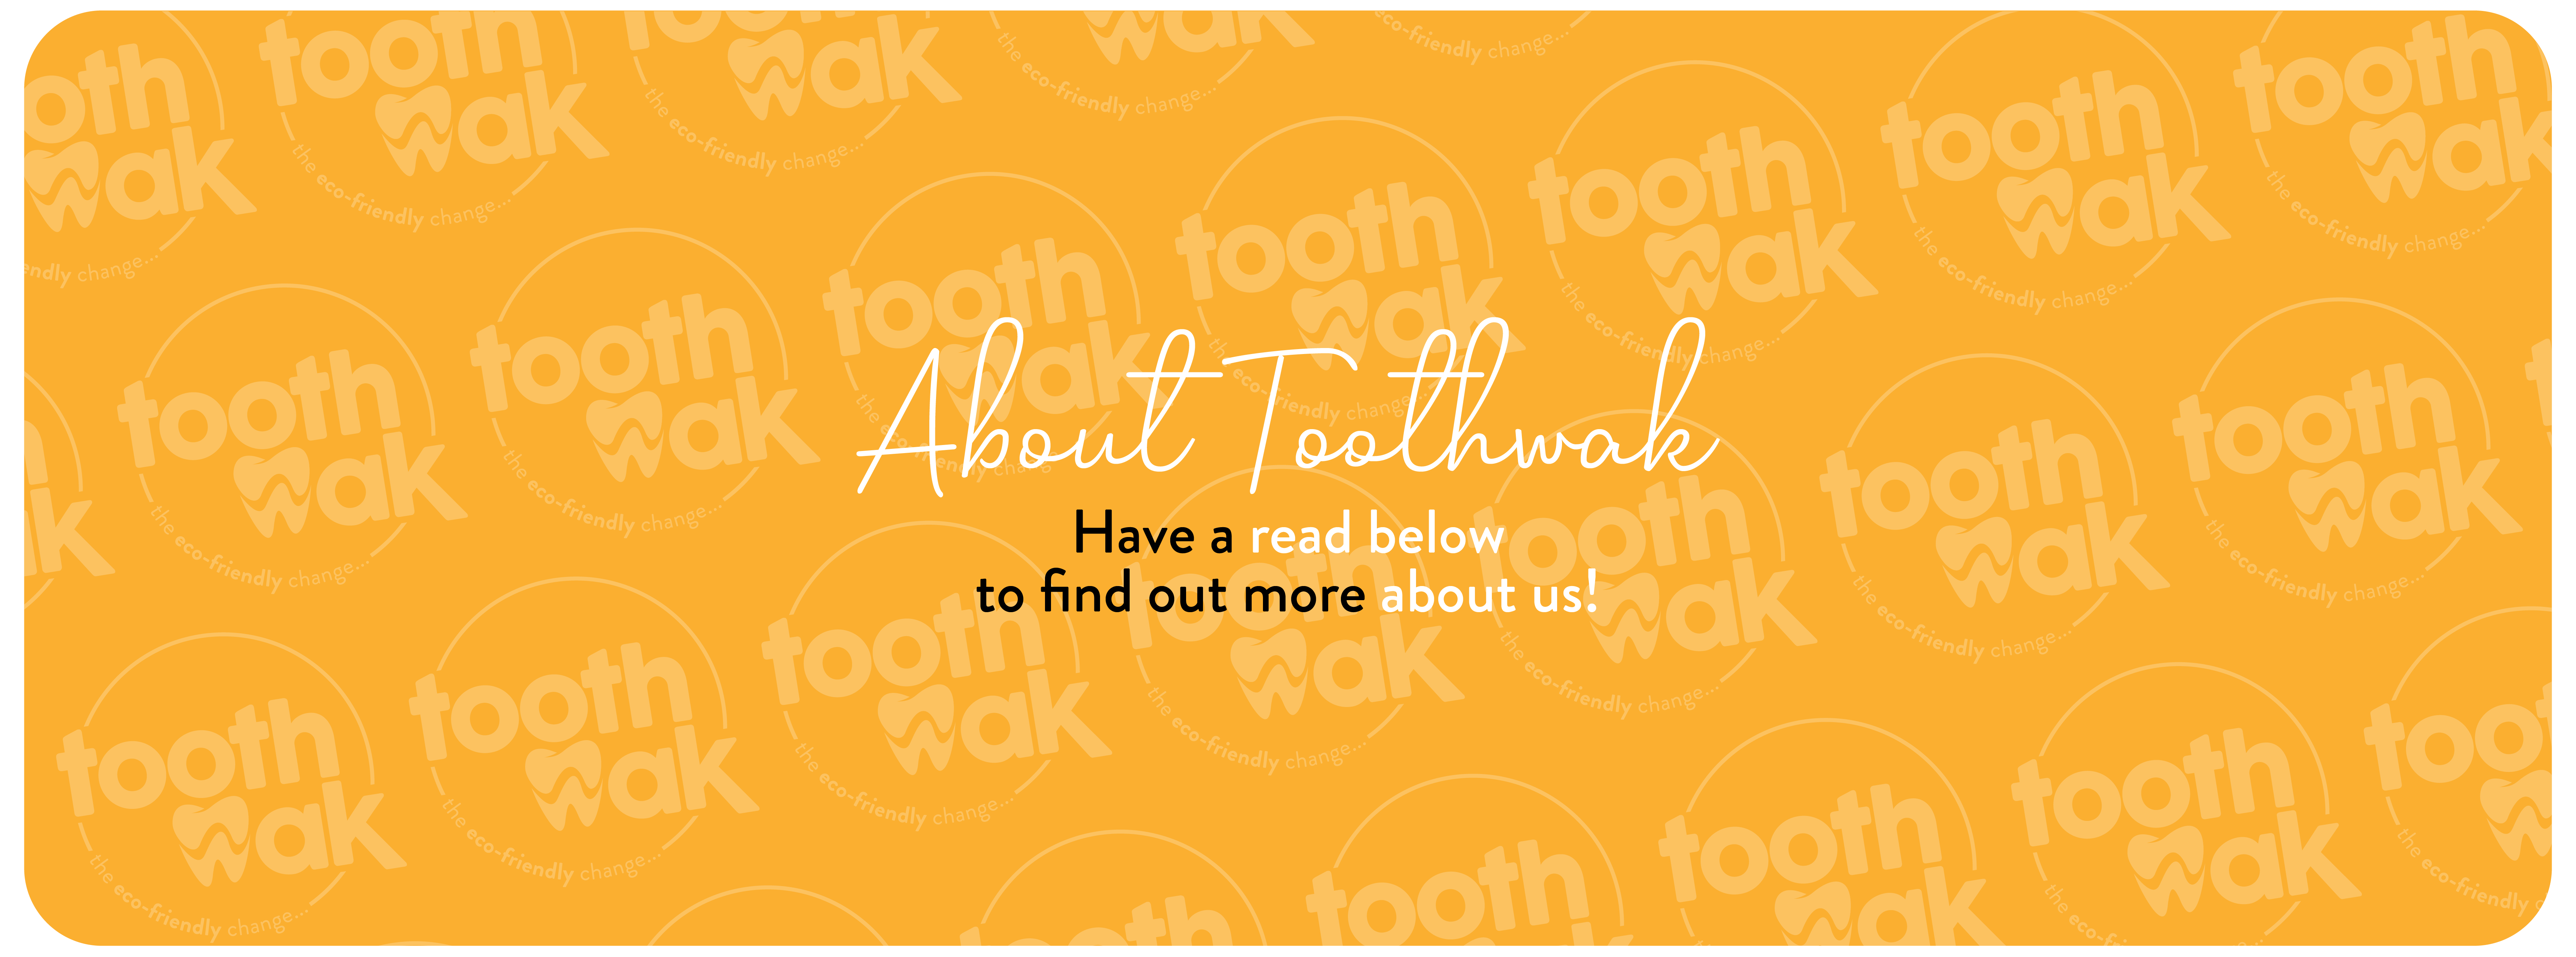 About Toothwak